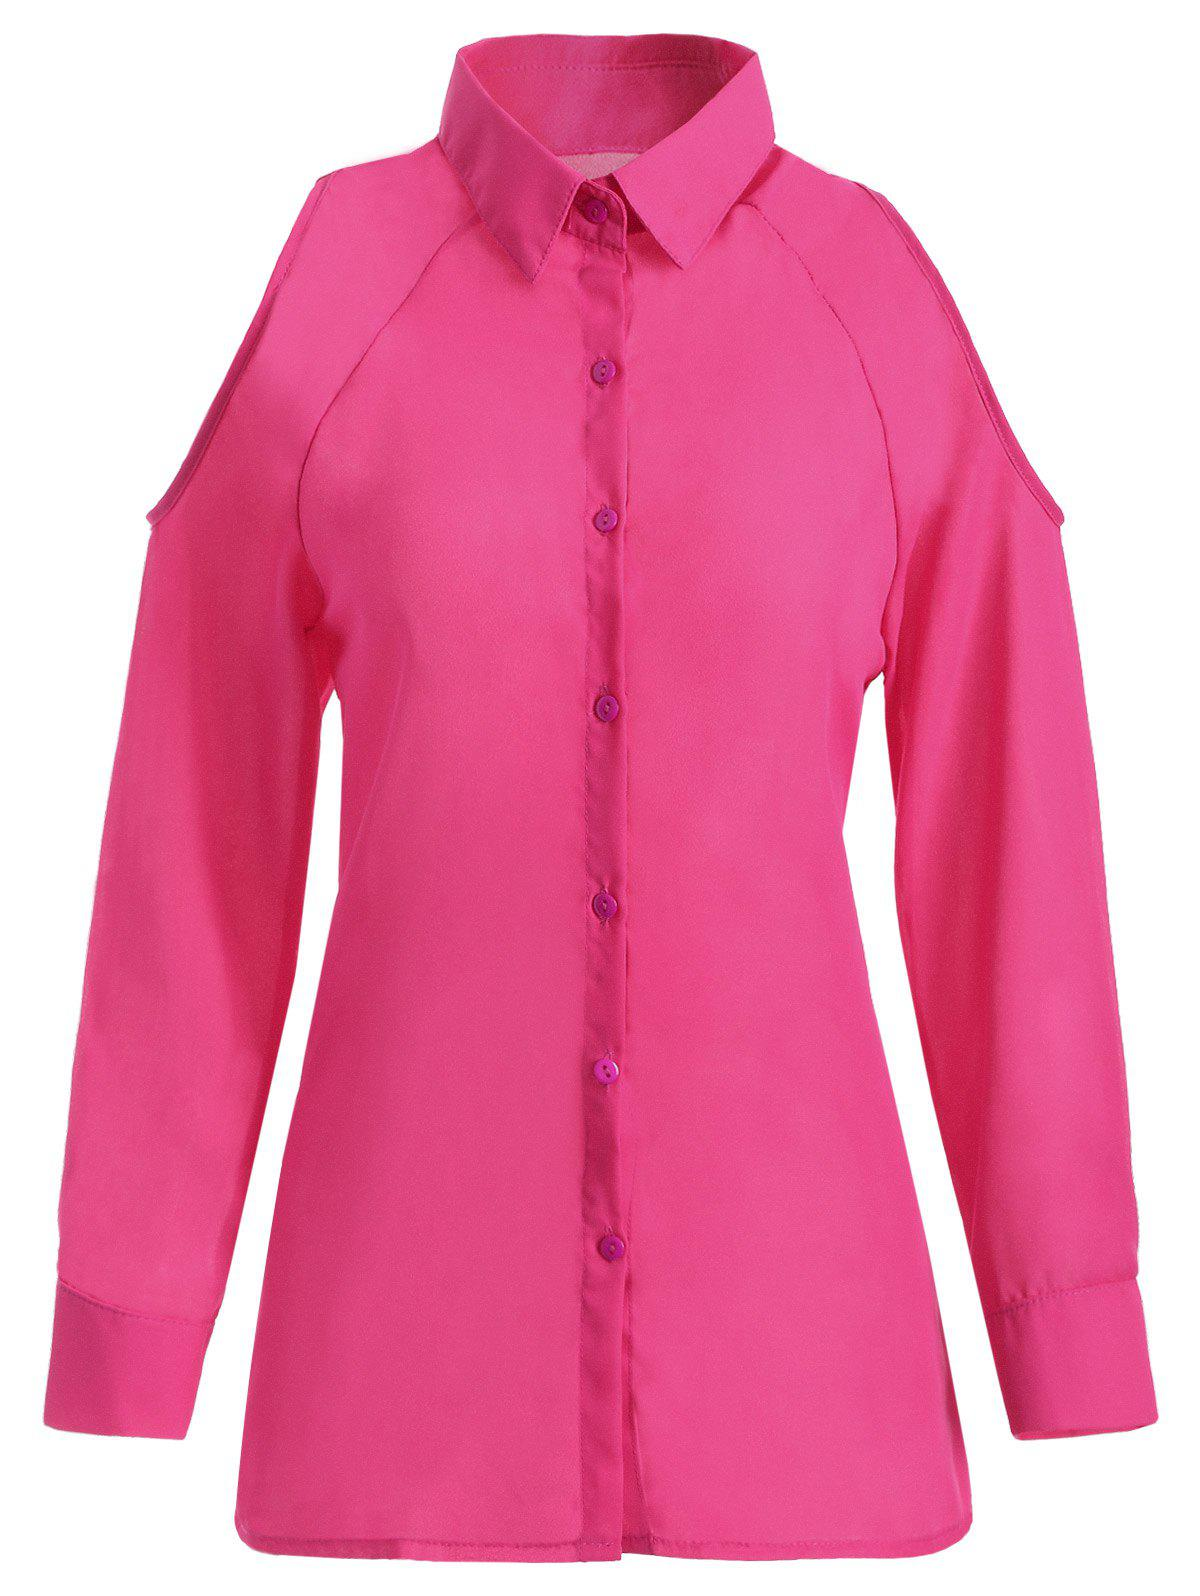 Button Up Cut Out Chiffon ShirtWomen<br><br><br>Size: L<br>Color: ROSE RED